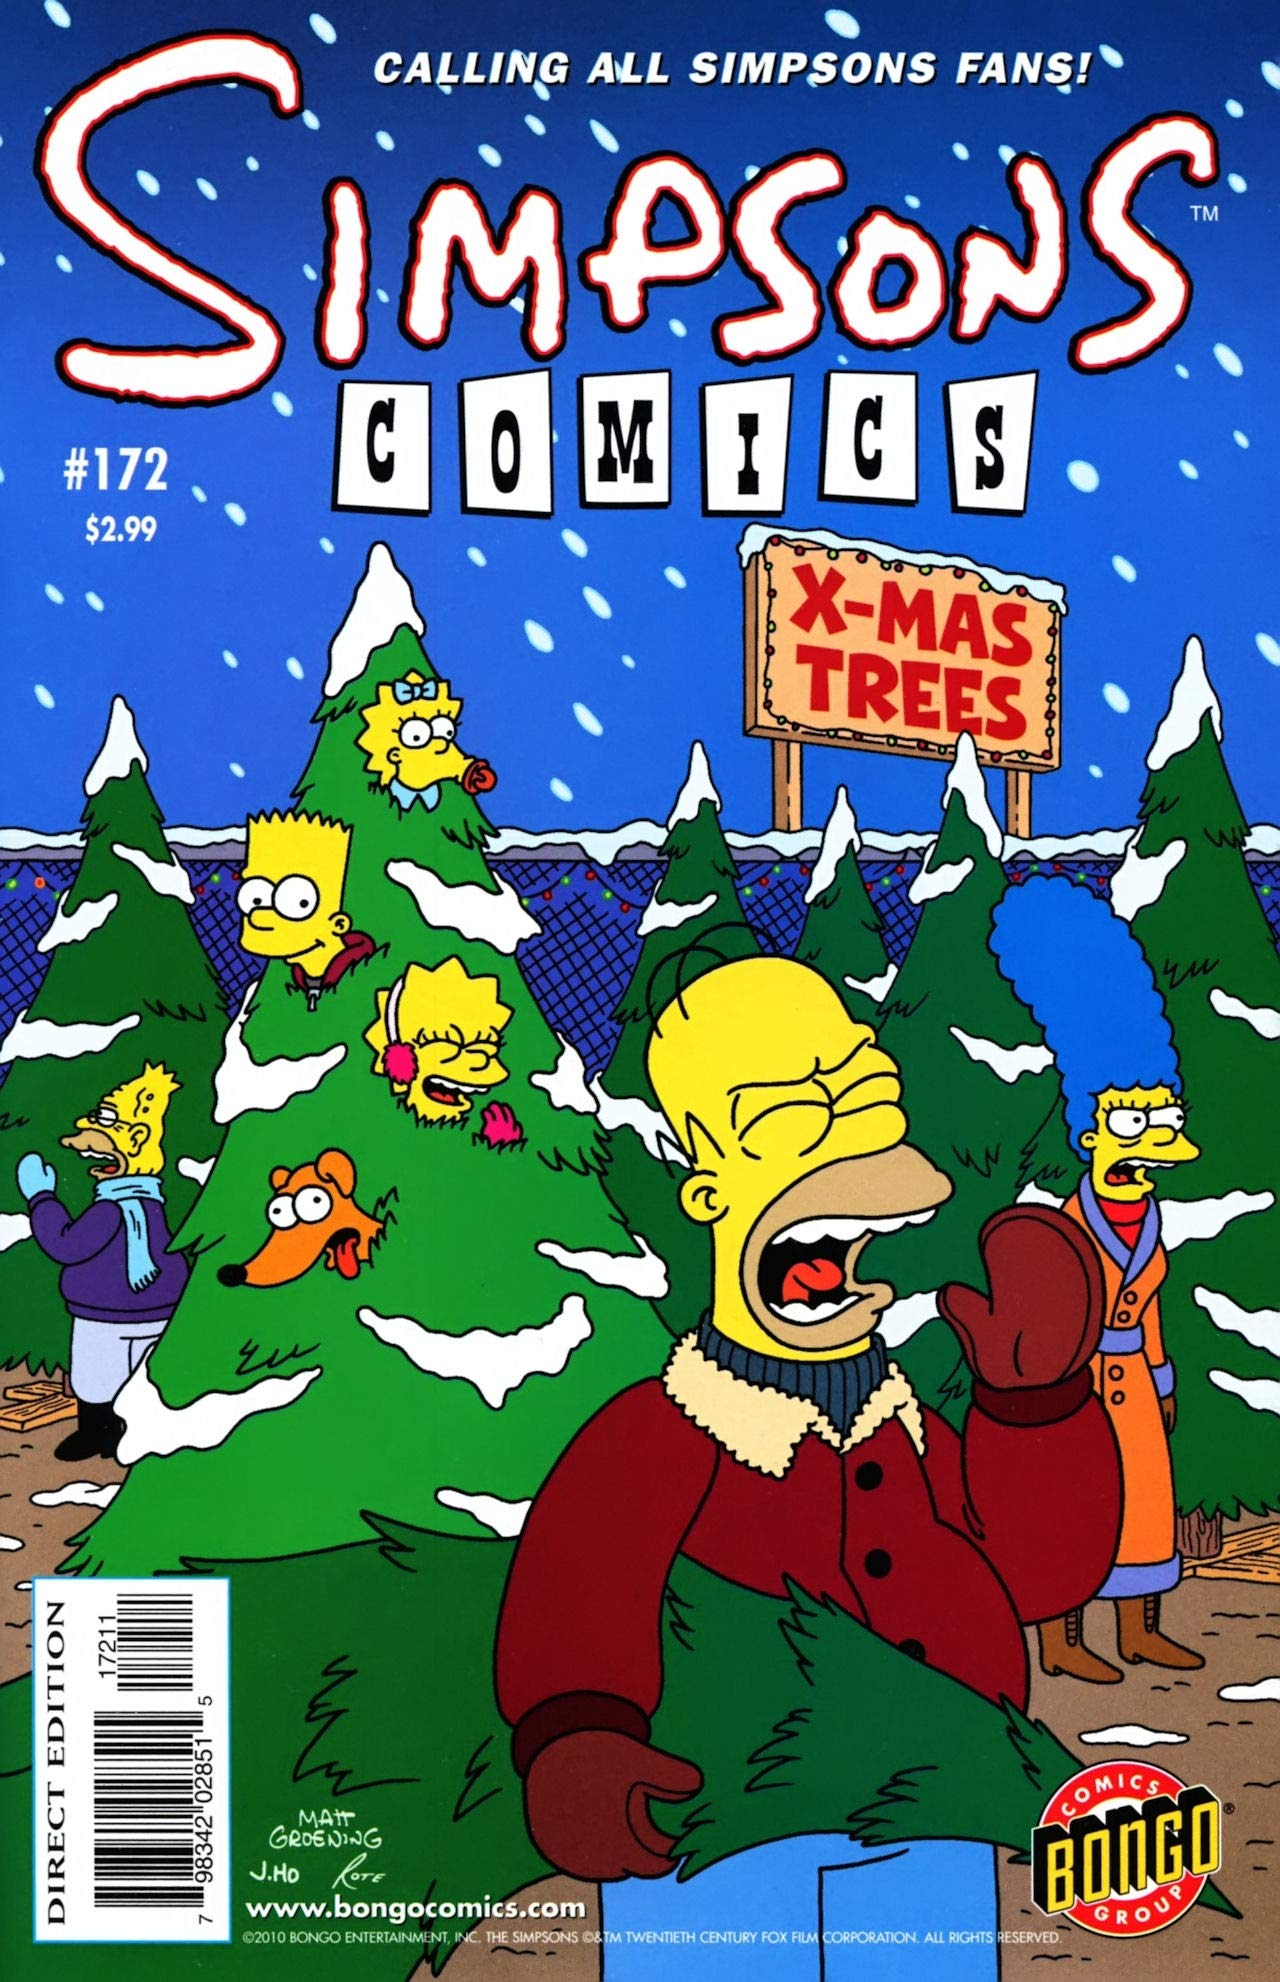 Simpsons Comics: Vol 29 Funny Cartoon Family Comics Books For Kids, Boys , Girls , Fans , Adults